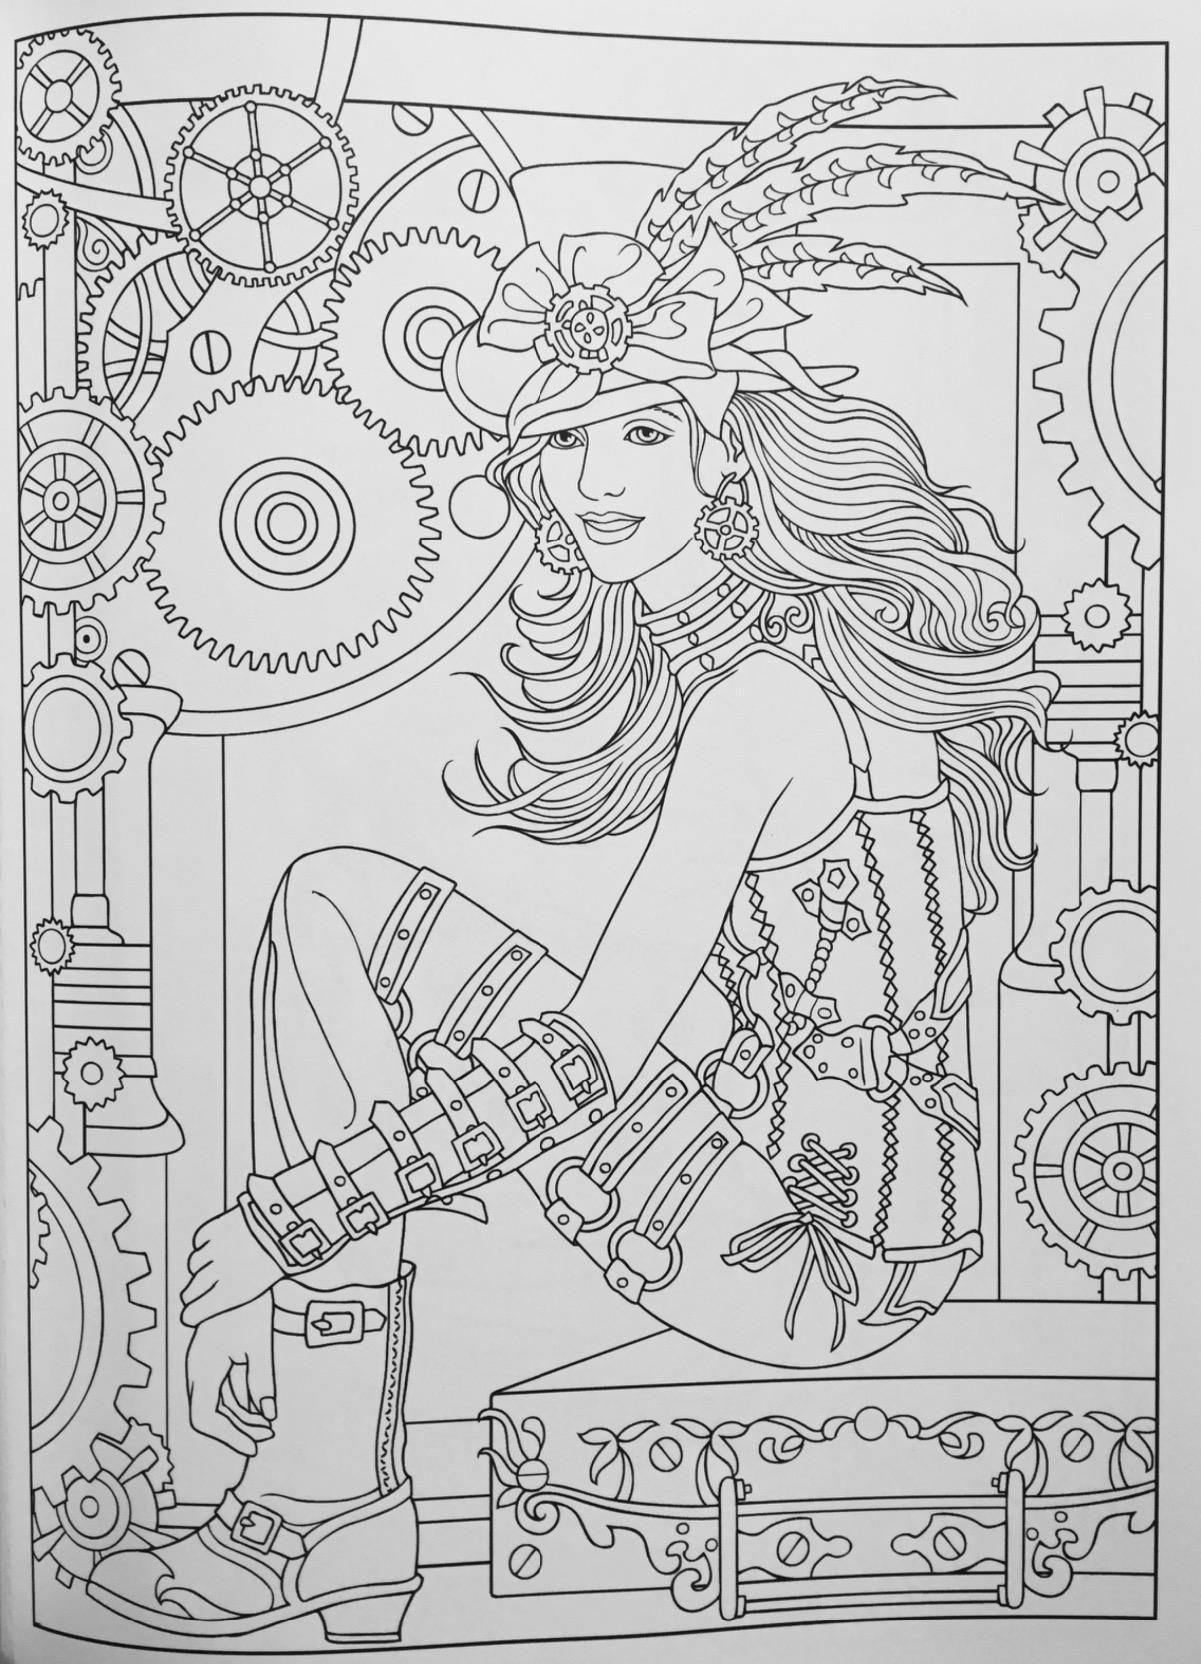 Robot Check Steampunk Coloring Coloring Pages Coloring Books